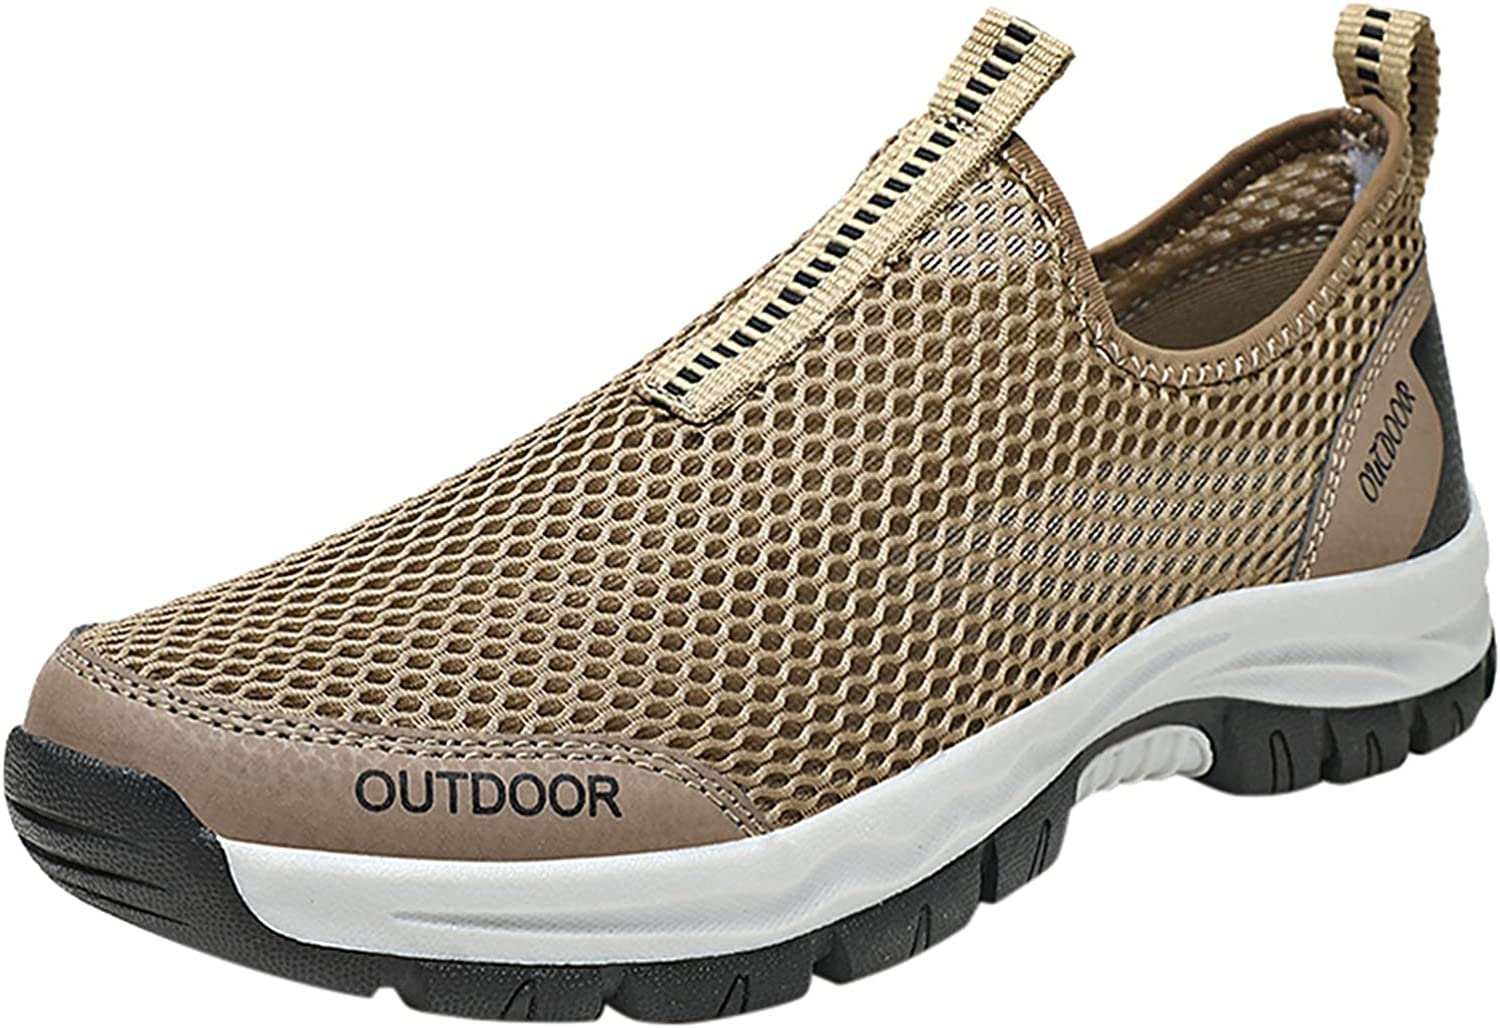 Mens Lightweight Slip-on Running Fashion Shoes Safety Special price for a limited time and trust Sneakers Walking